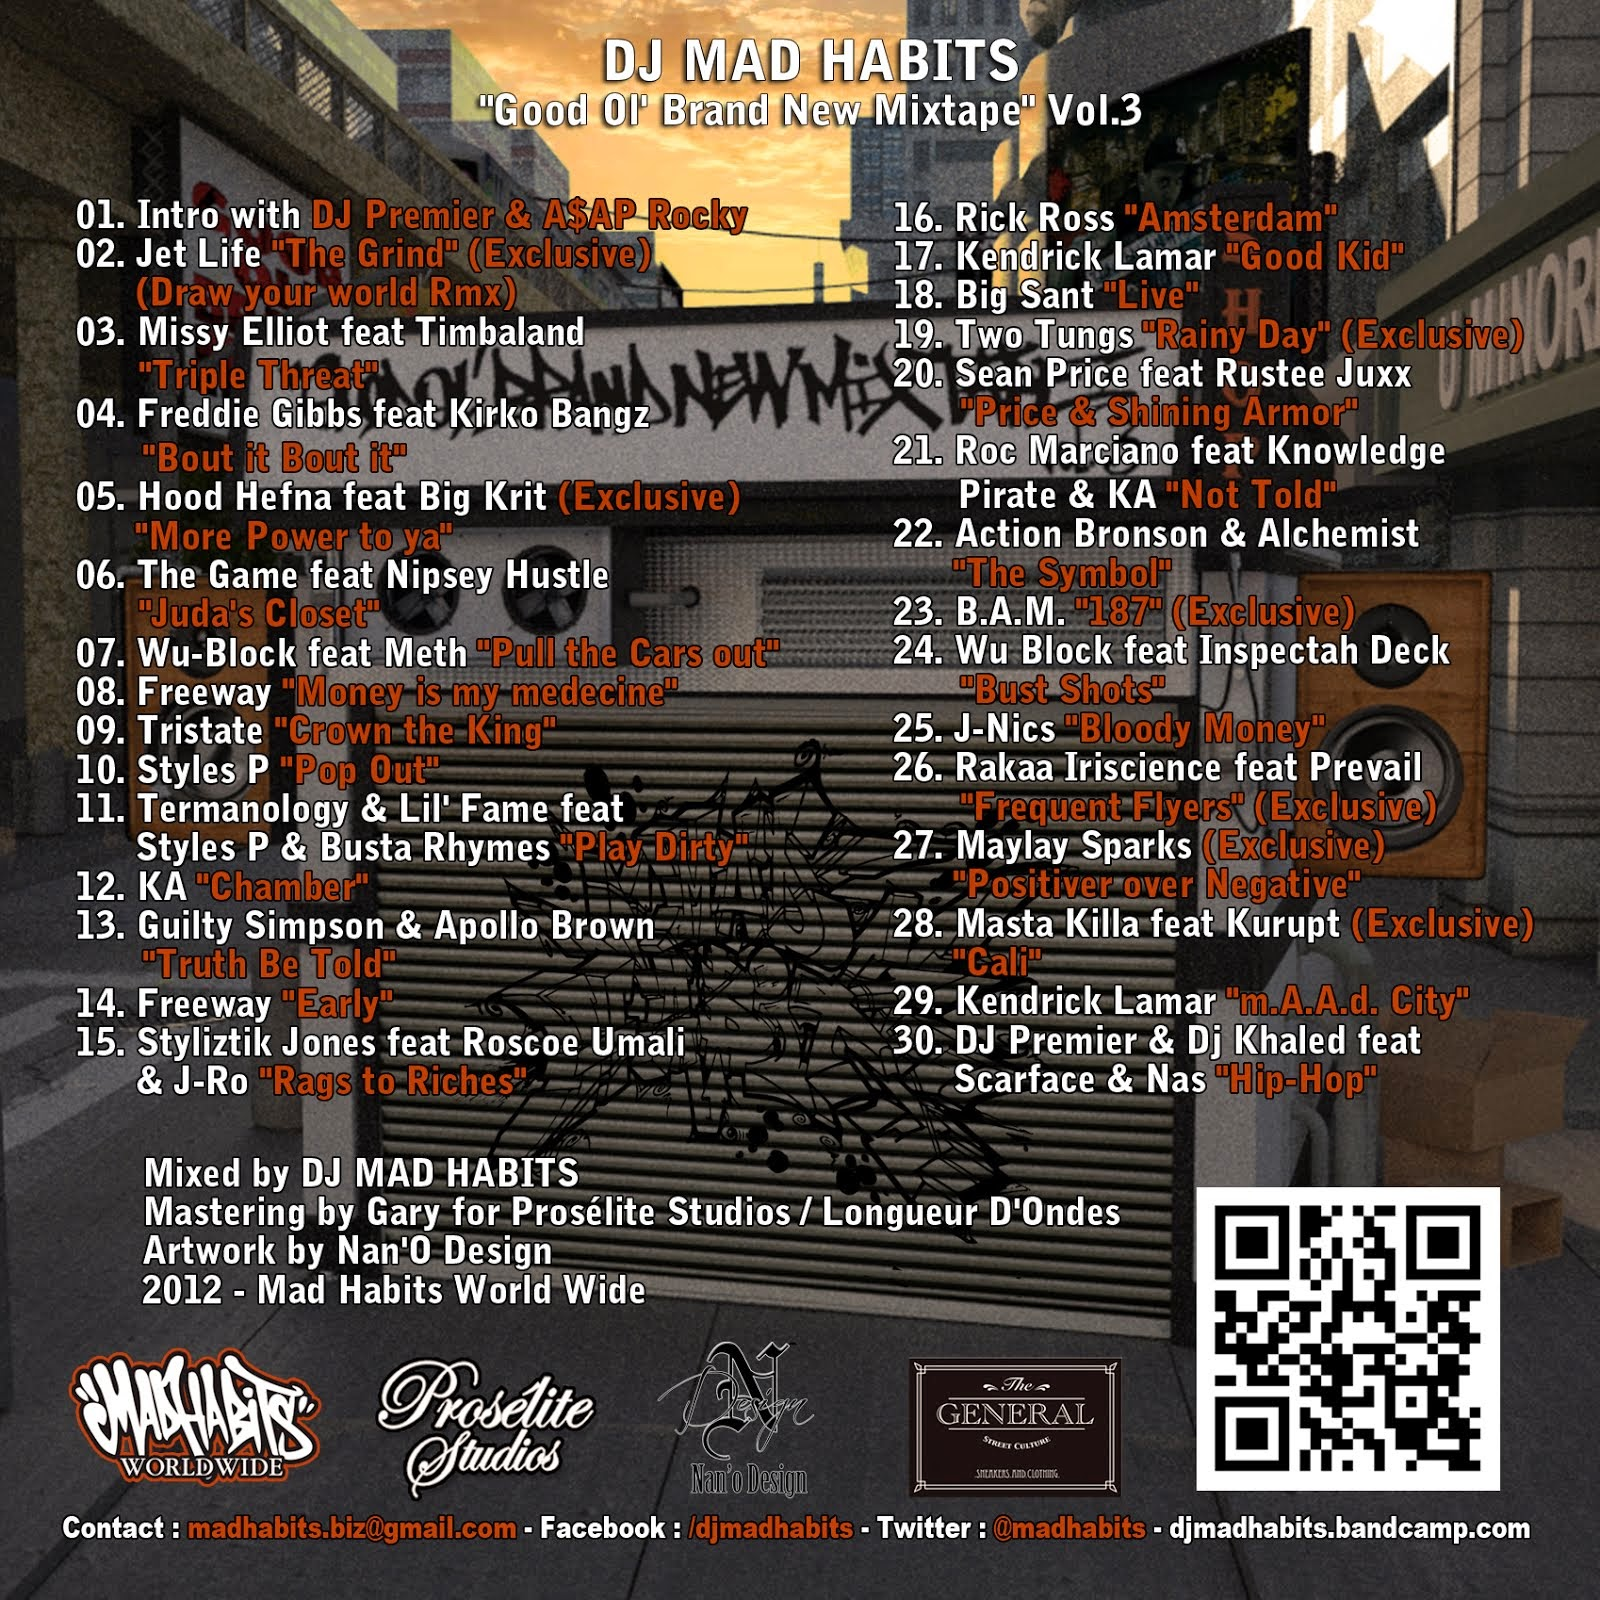 back cd cover / jaquette arriere de la mixtape